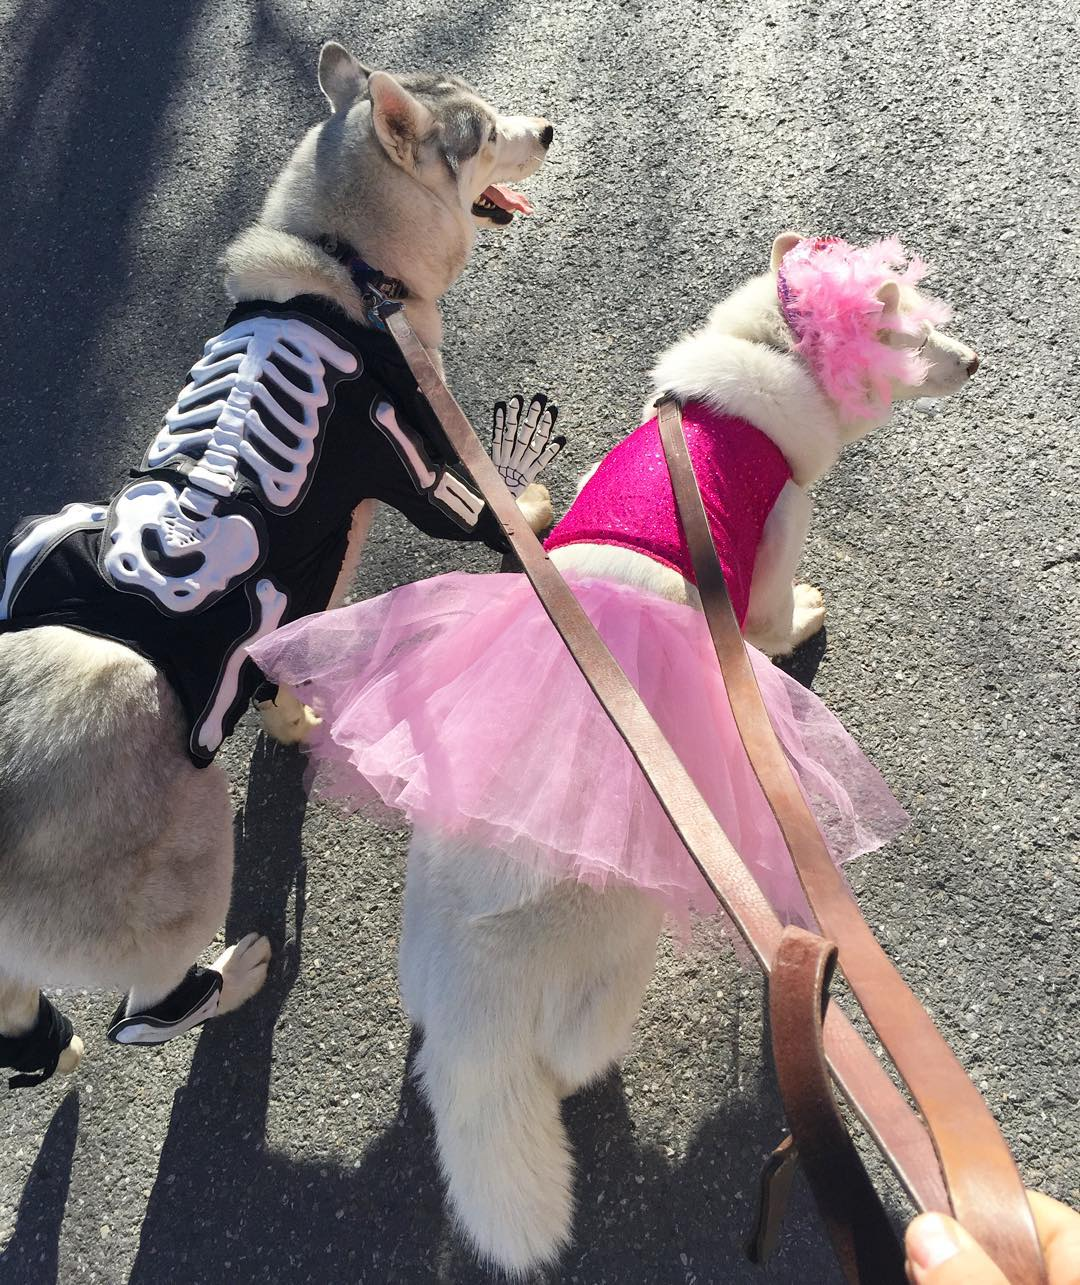 Yesterday's view while walking my poor, costume-tortured dogs as we walked around Main Street in Park City for Halloween for the Park City Dog Parade. They're used roaming through mountain trails, not dressing up! I think they were fairly embarrassed....